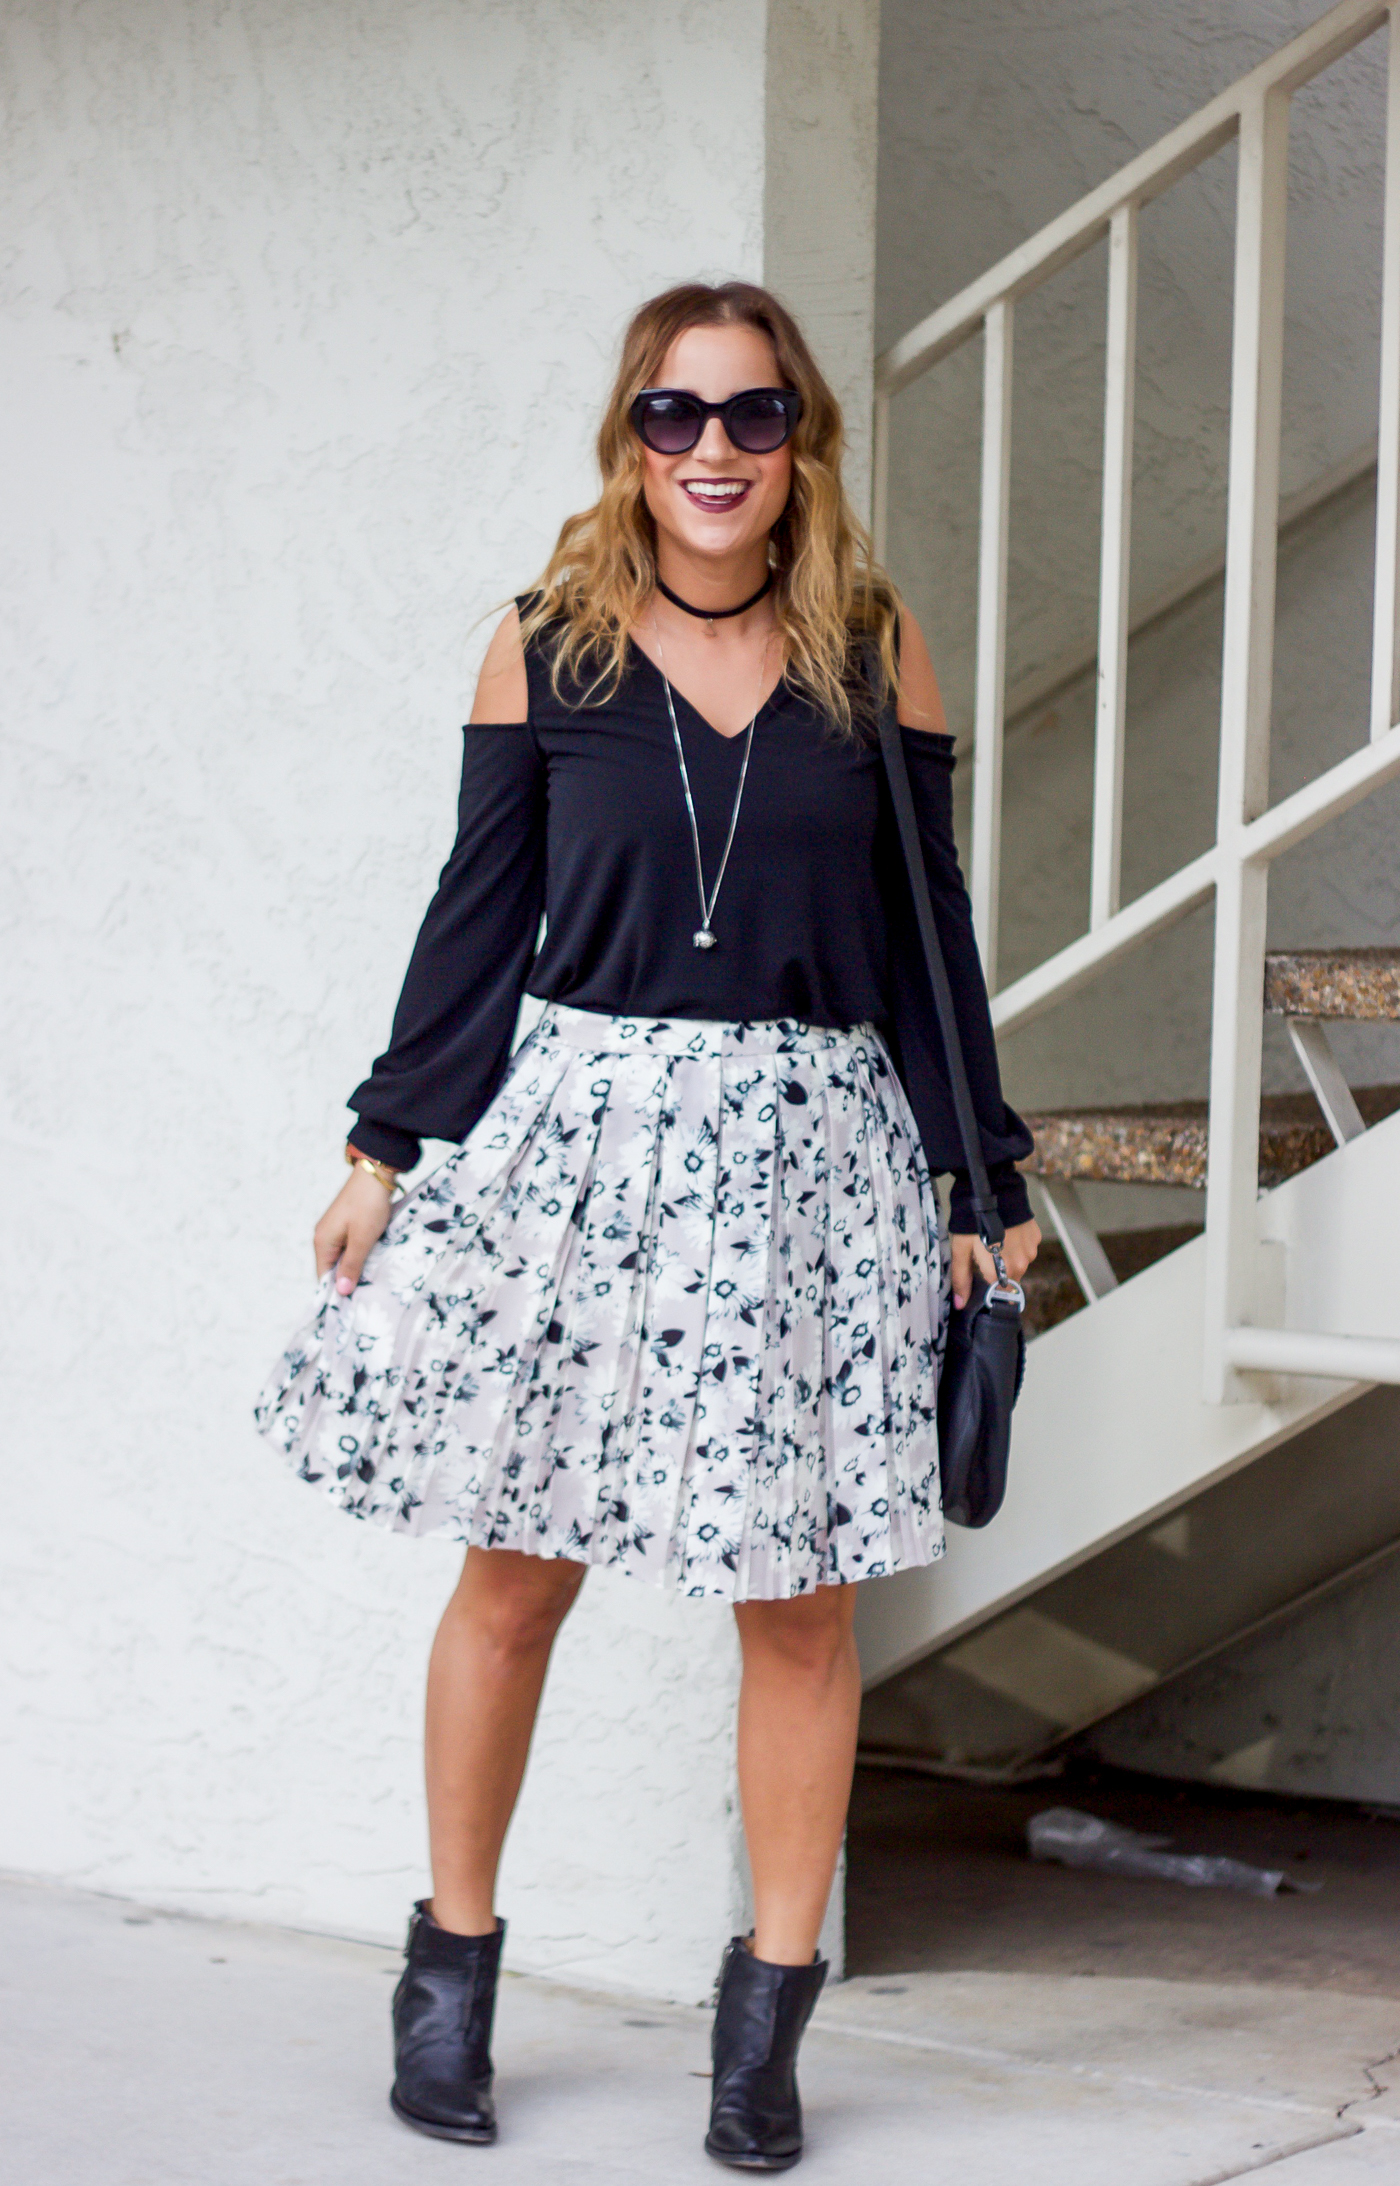 Toronto fashion and lifestyle blogger, Jackie Goldhar of Something About That, is wearing a cold shoulder top from Express and a floral box pleat skirt from Banana Republic